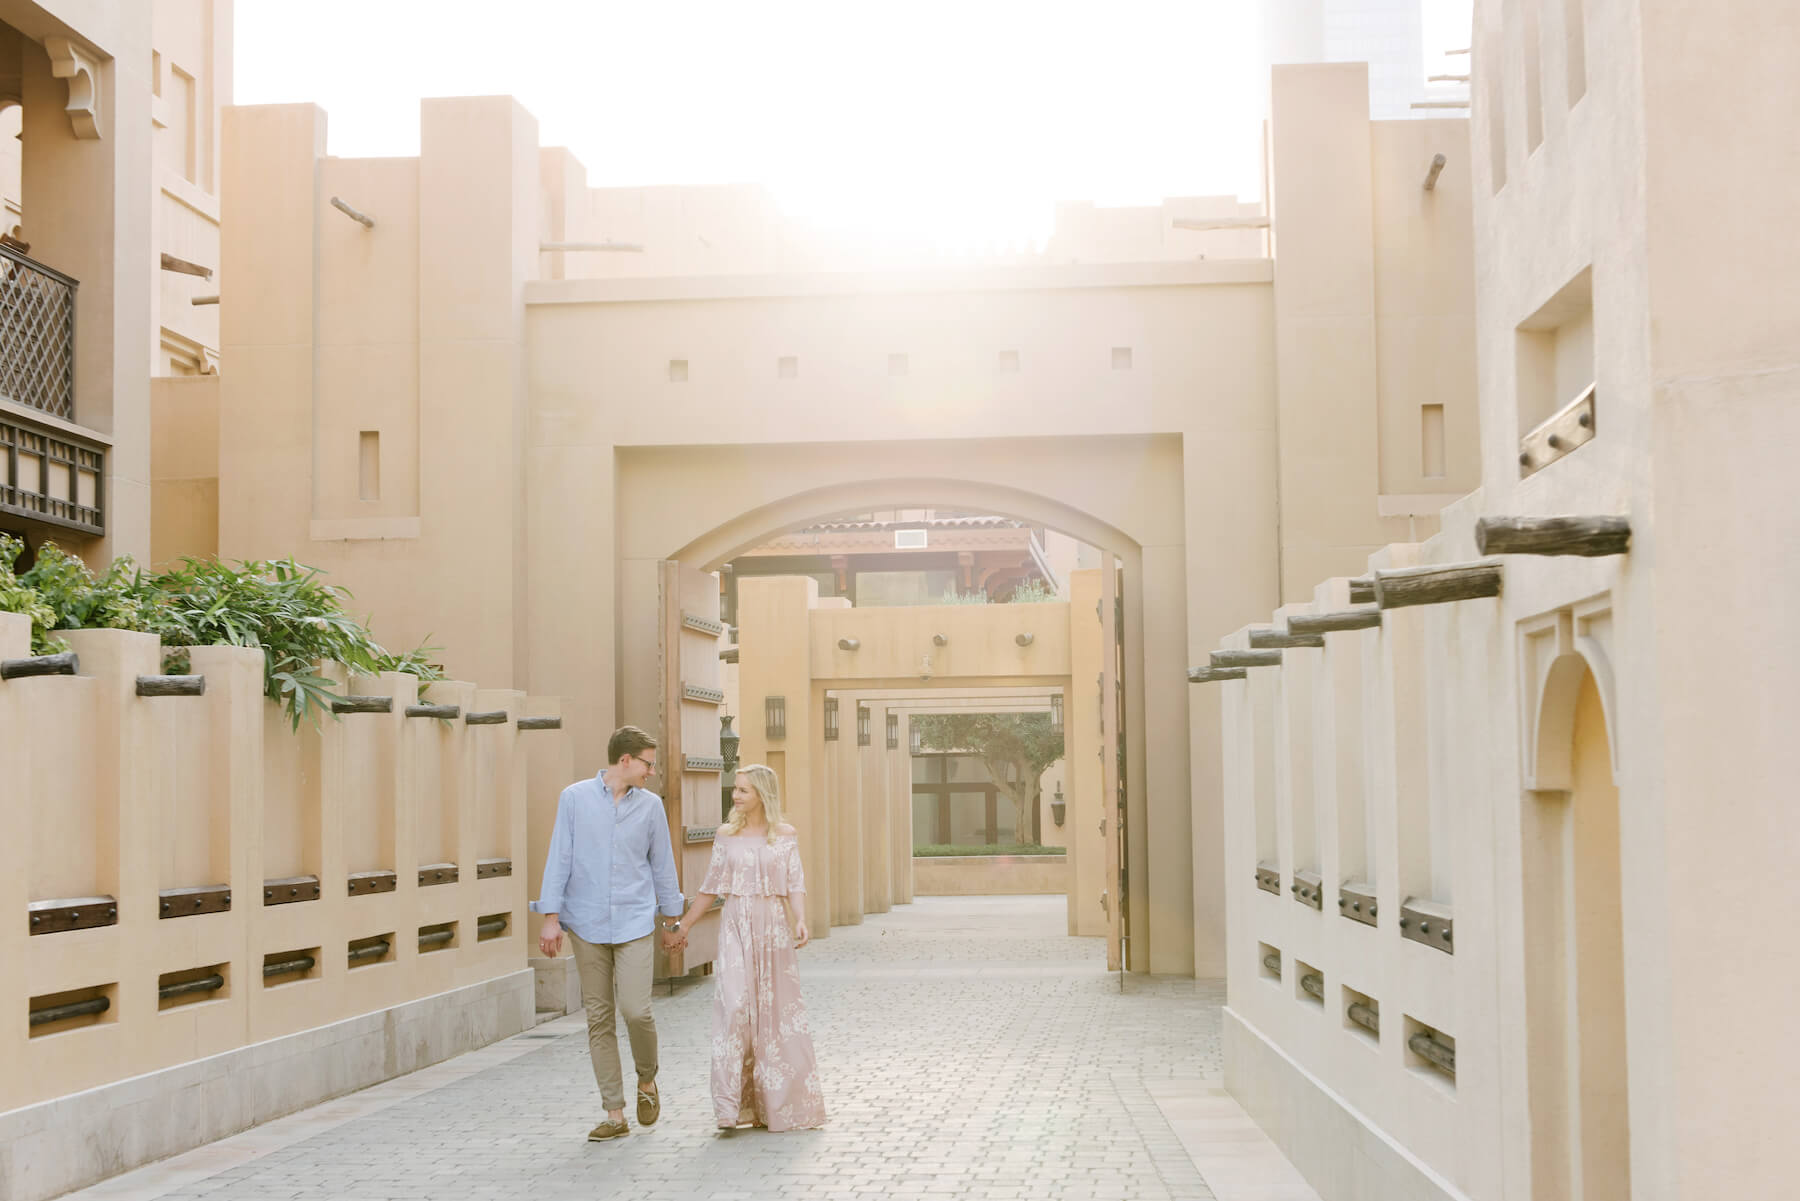 Couple holding hands and walking down alleyway in Old Dubai, Dubai United Arab Emirates